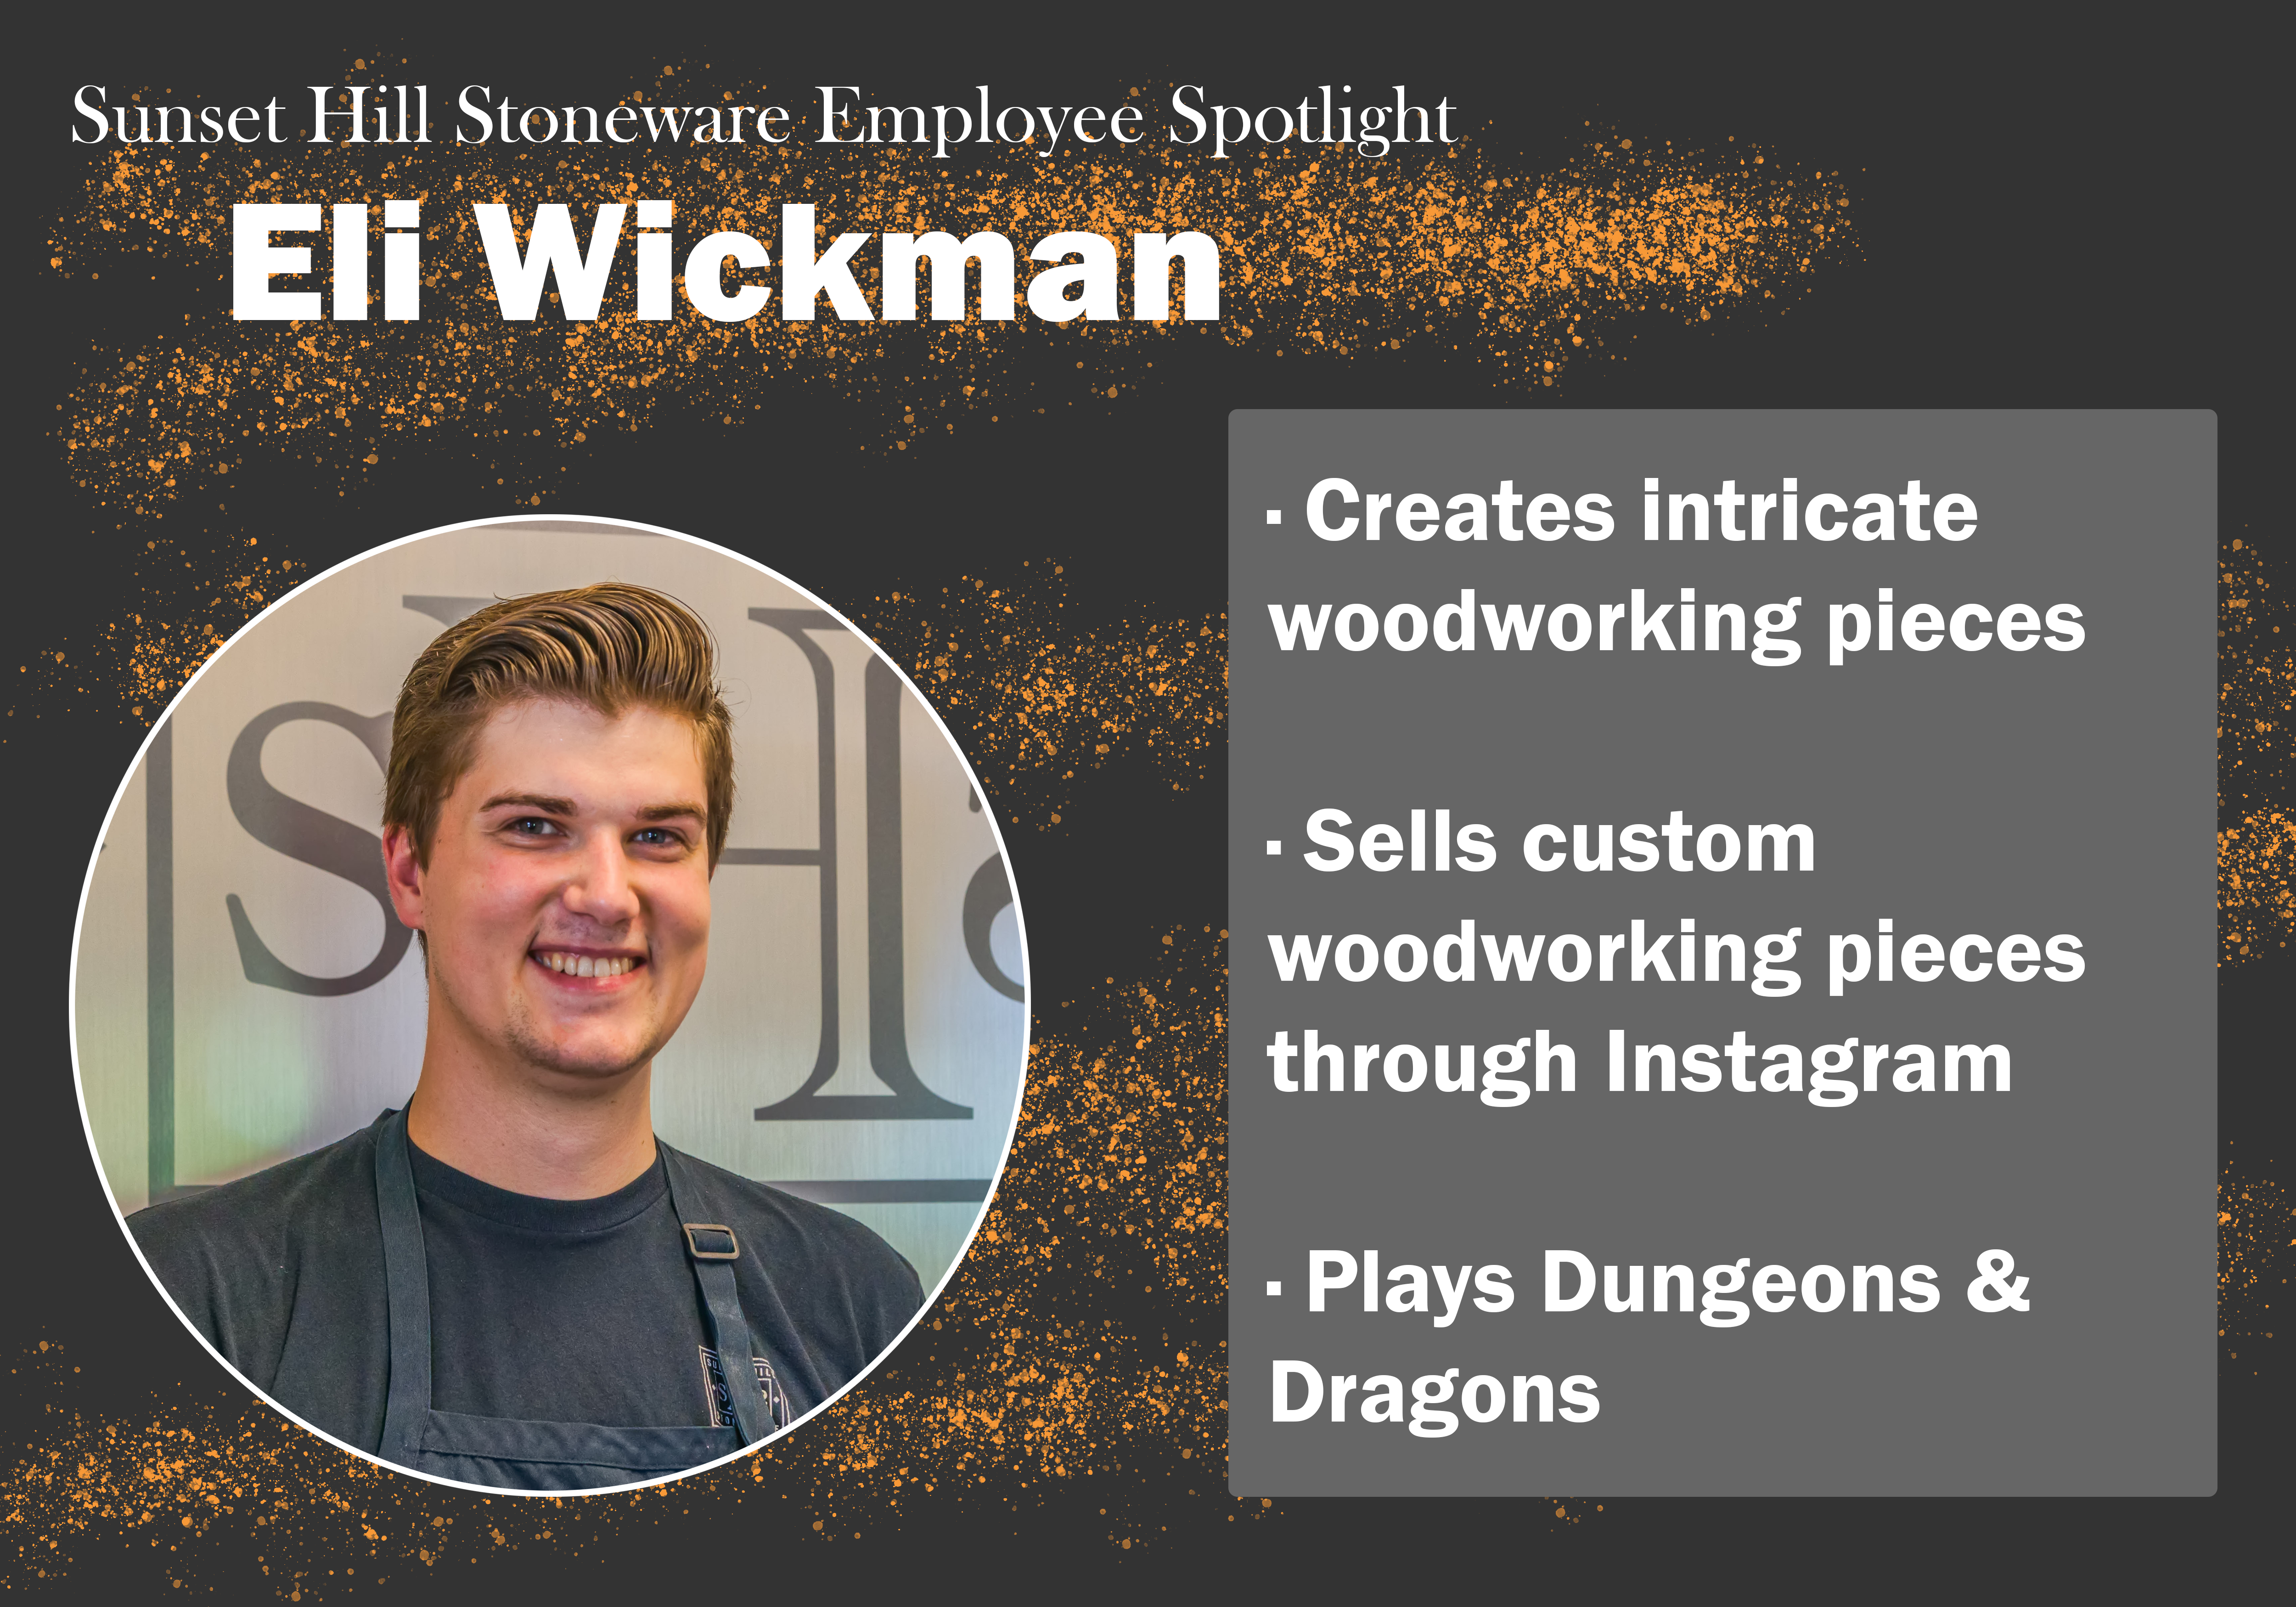 Sunset Hill Stoneware Employee Spotlight: Eli Wickman